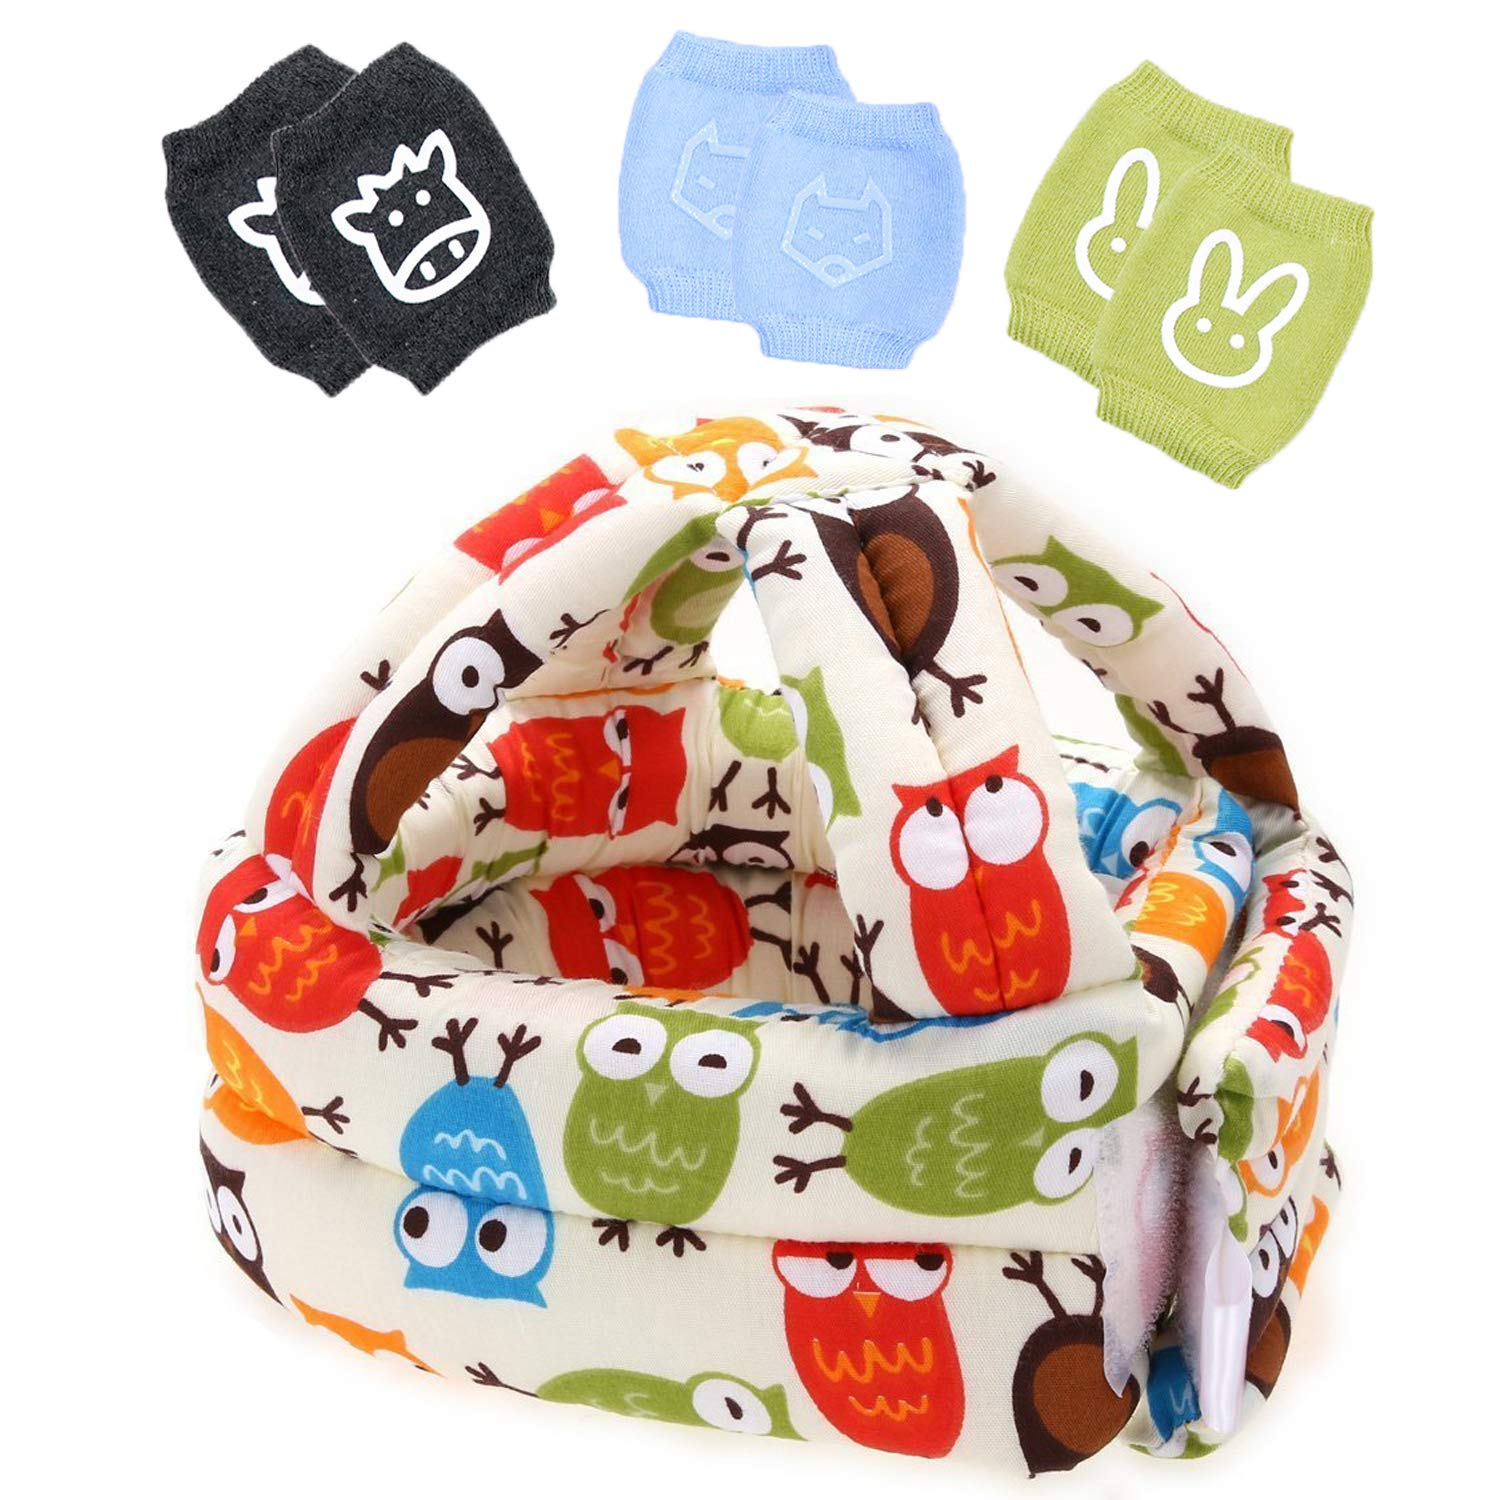 Lightton Toddler Baby Safety Helmet Infant Protective Harnesses Cap Adjustable Printed +3pcs Baby Crawling Anti Slip Knee Pads